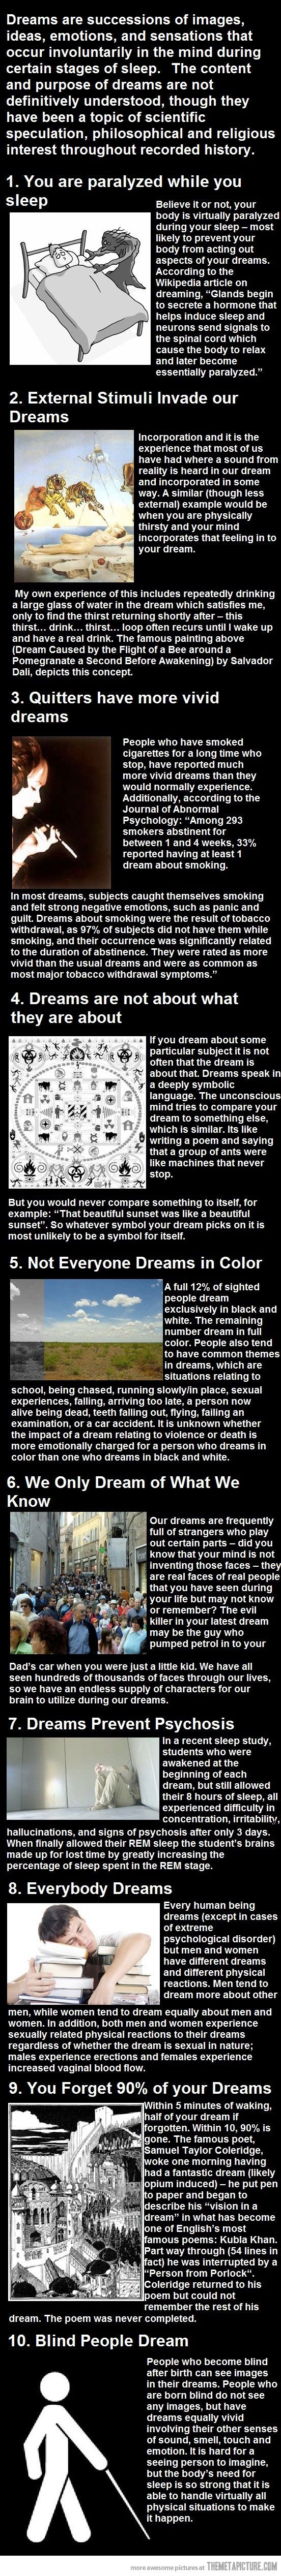 Top 10 Most Amazing Facts About Dreams Facts About Dreams Interesting Facts About Dreams Fun Facts